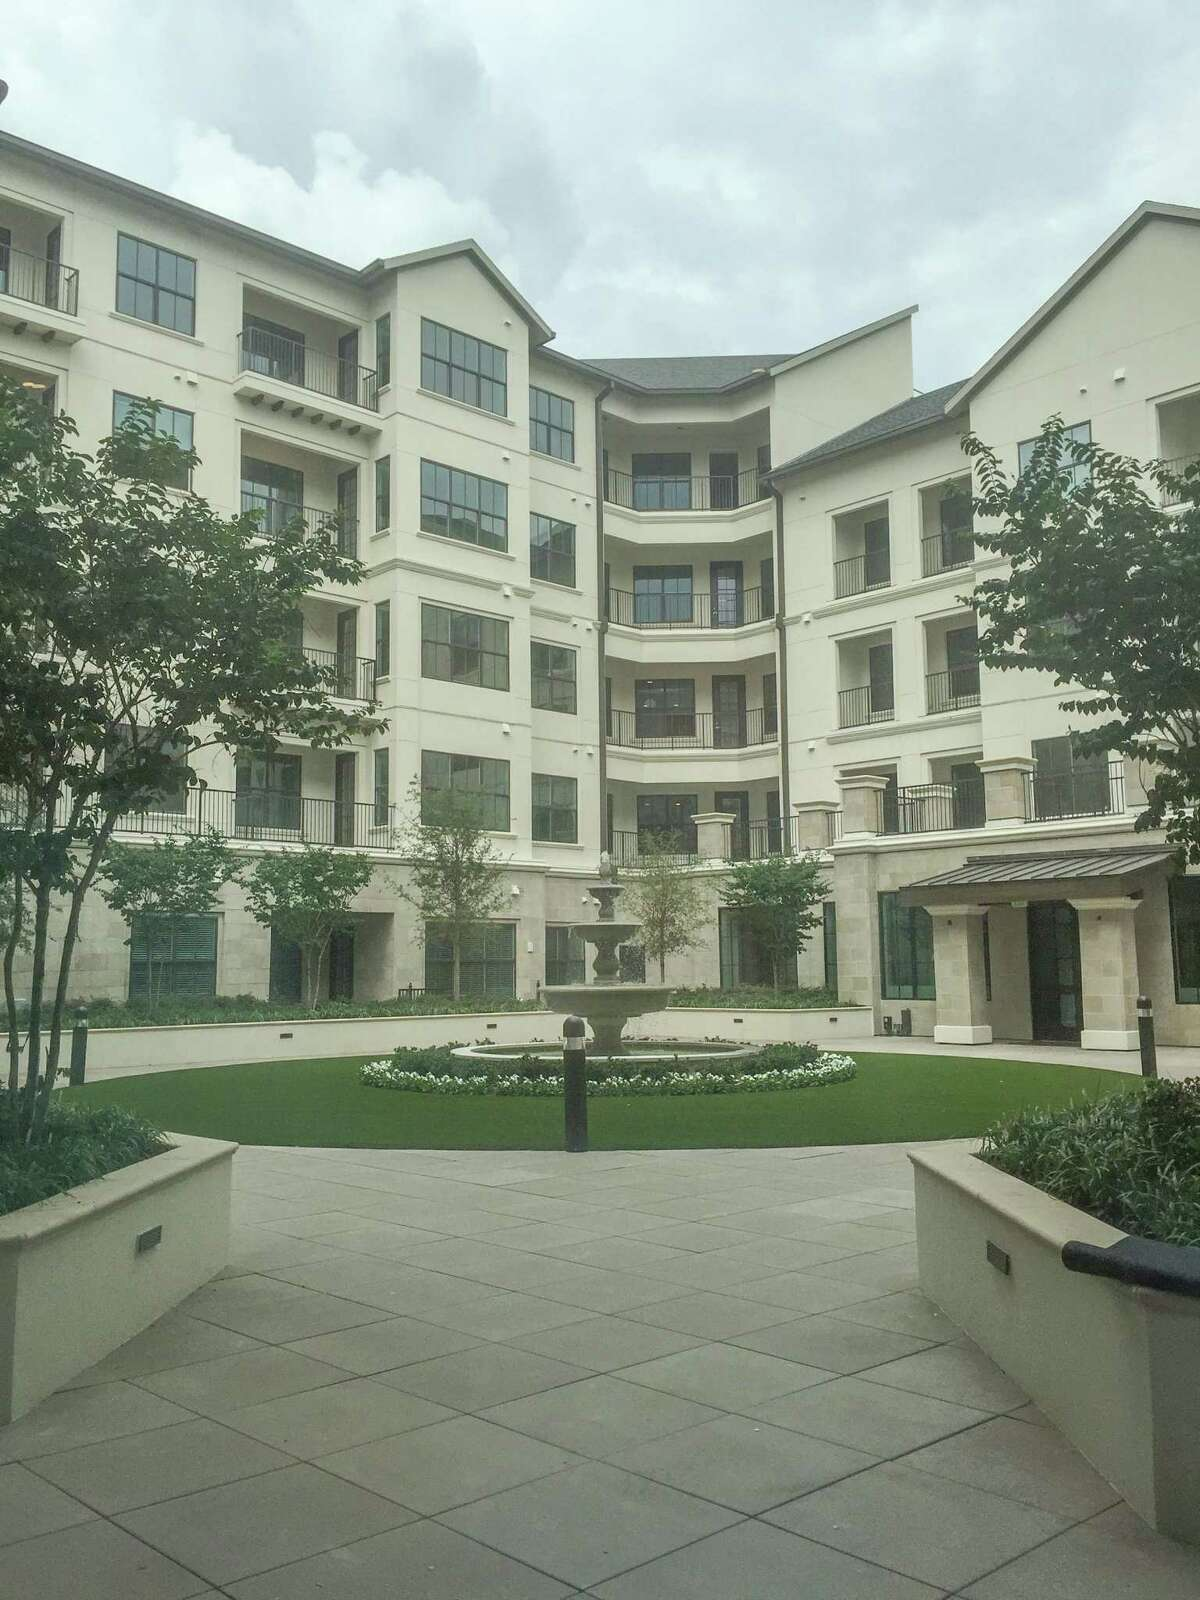 A view of The Tradition, a senior living community, that held its grand opening on Tuesday, June 4 for its first Houston location at 9339 Buffalo Speedway. As boomers move out of their homes, a surge of housing will come on the market, says Zillow. NEXT: Houston's most expensive homes sold in October